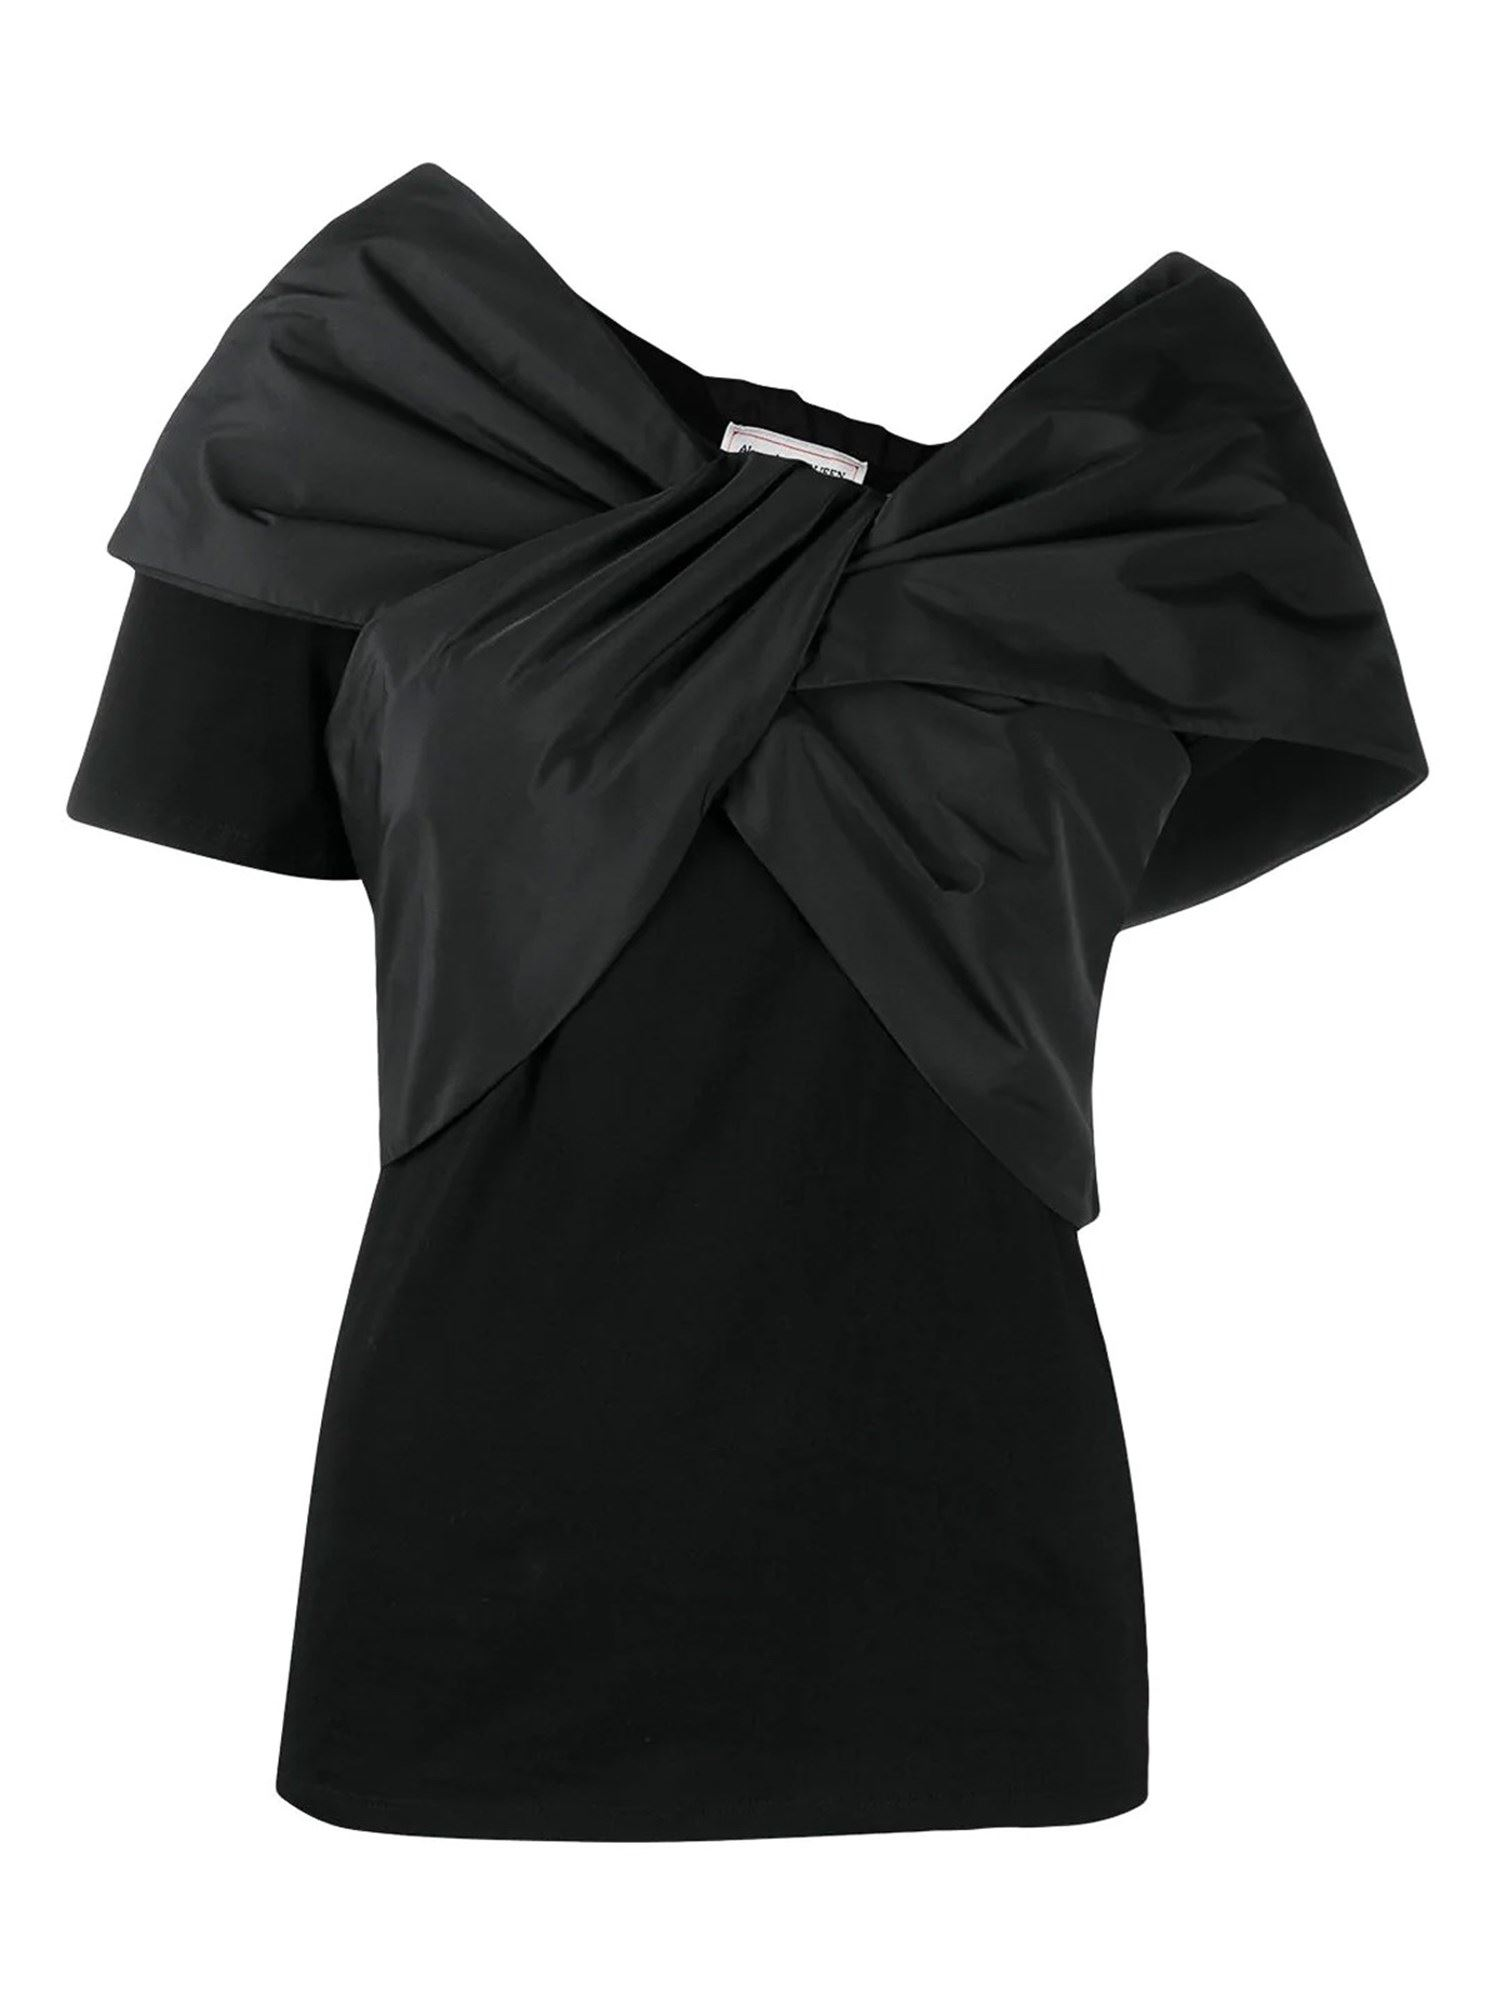 Alexander Mcqueen Cotton T-shirt With Bow In Nero